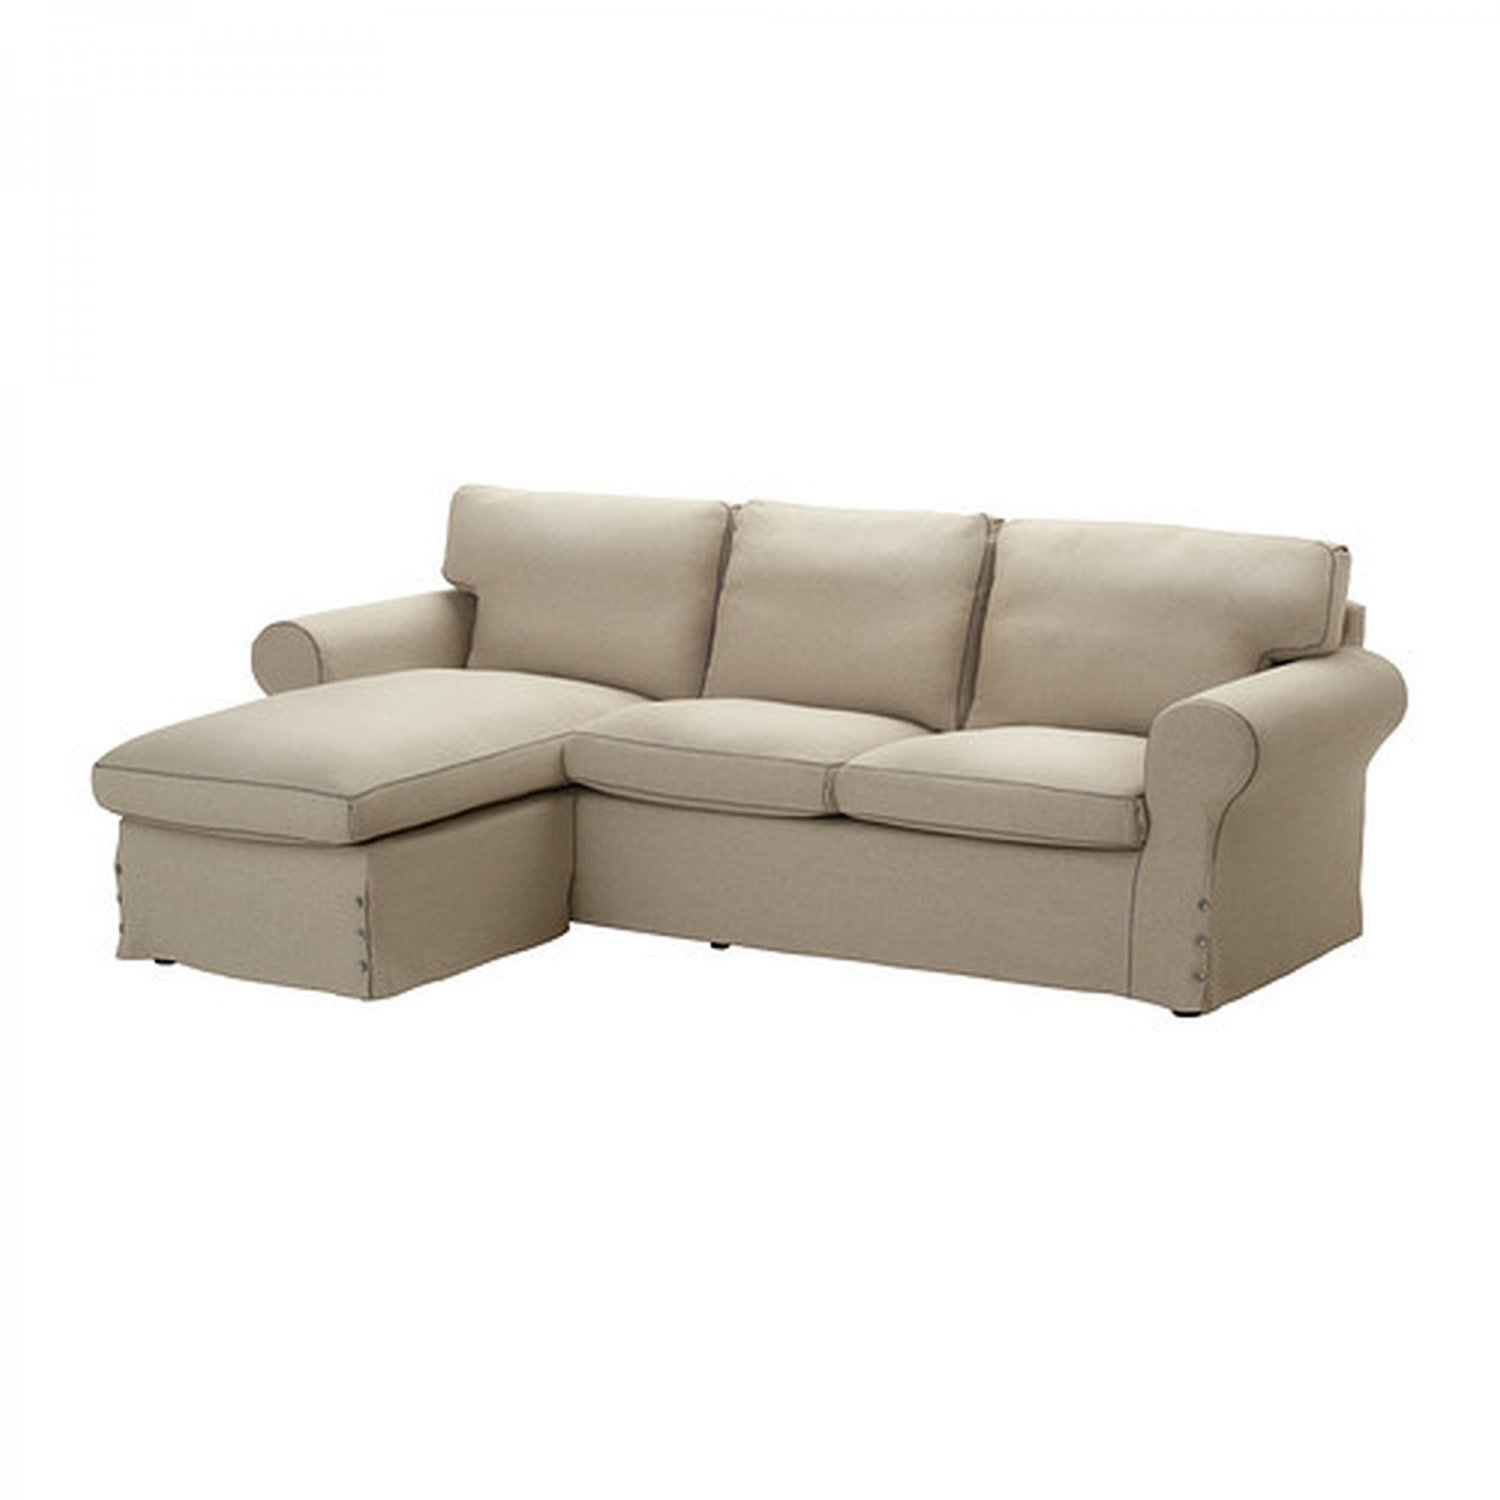 Ikea Ektorp 2 Seat Loveseat W Chaise Cover 3 Seat Sectional Slipcover Risane Natural Linen Beige